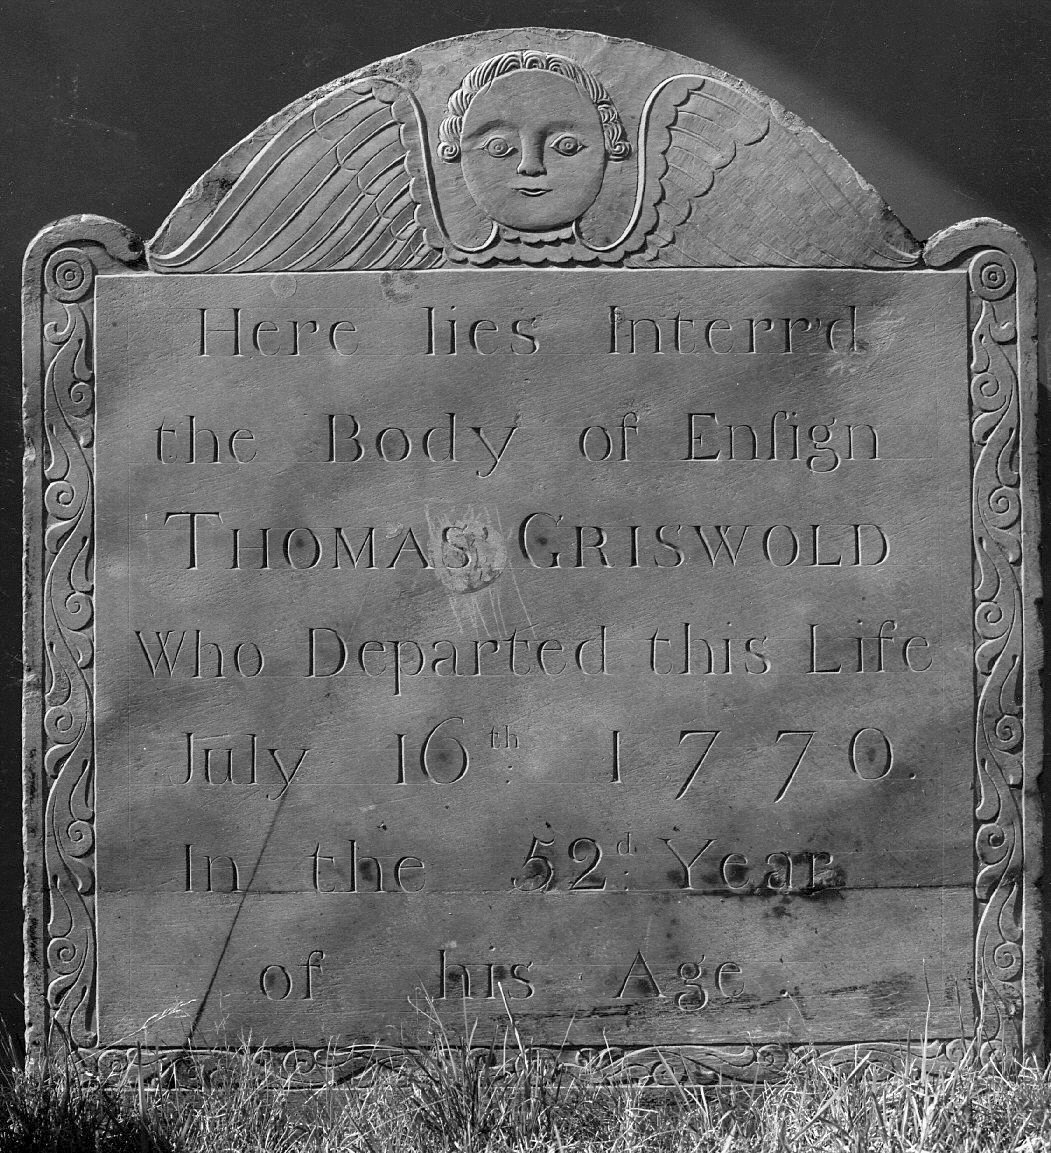 Griswold, Thomas